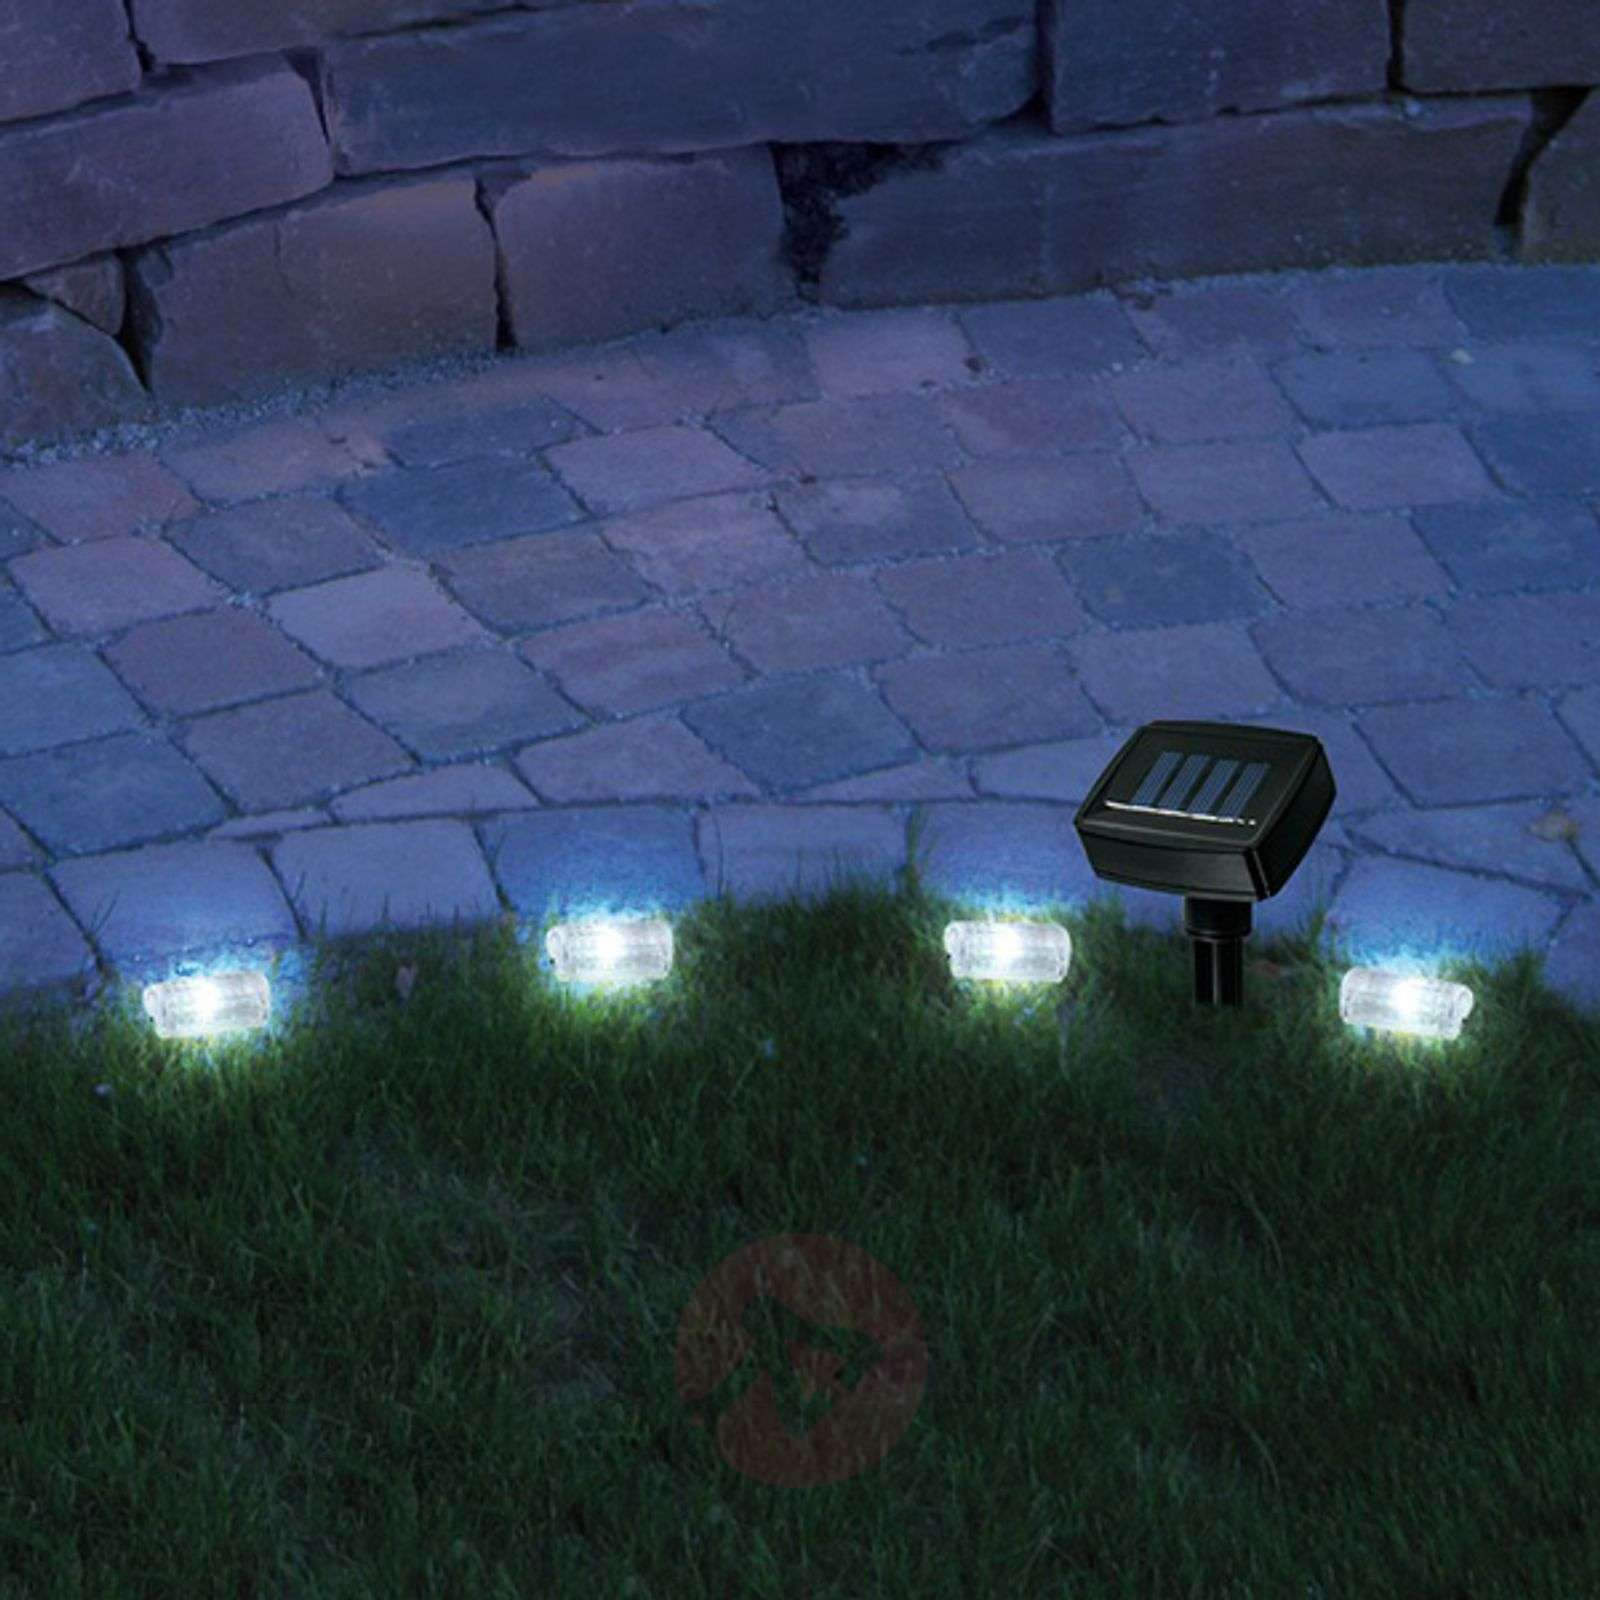 Promenade solar lawn edge string lights with LED-9506042-01